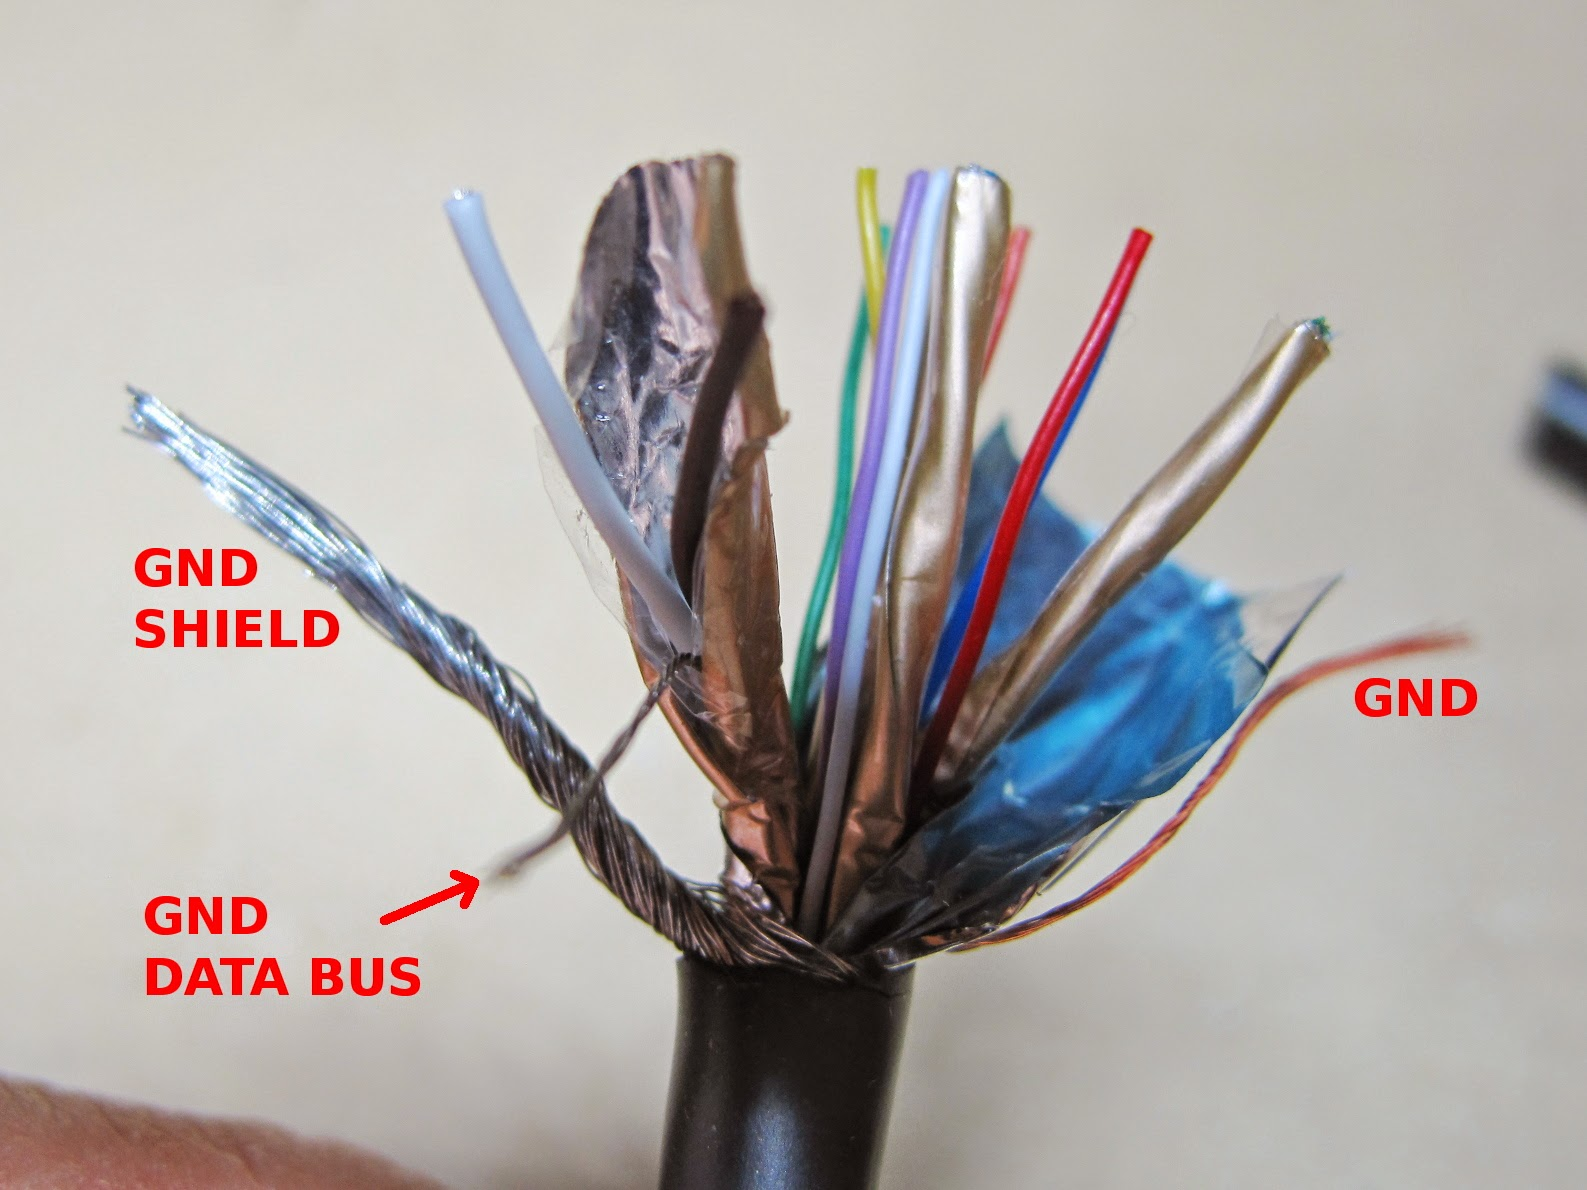 Vga Extension Cable Wiring Diagram 1988 Ezgo Marathon Petit Studio Hdmi Cables Are Not All The Same